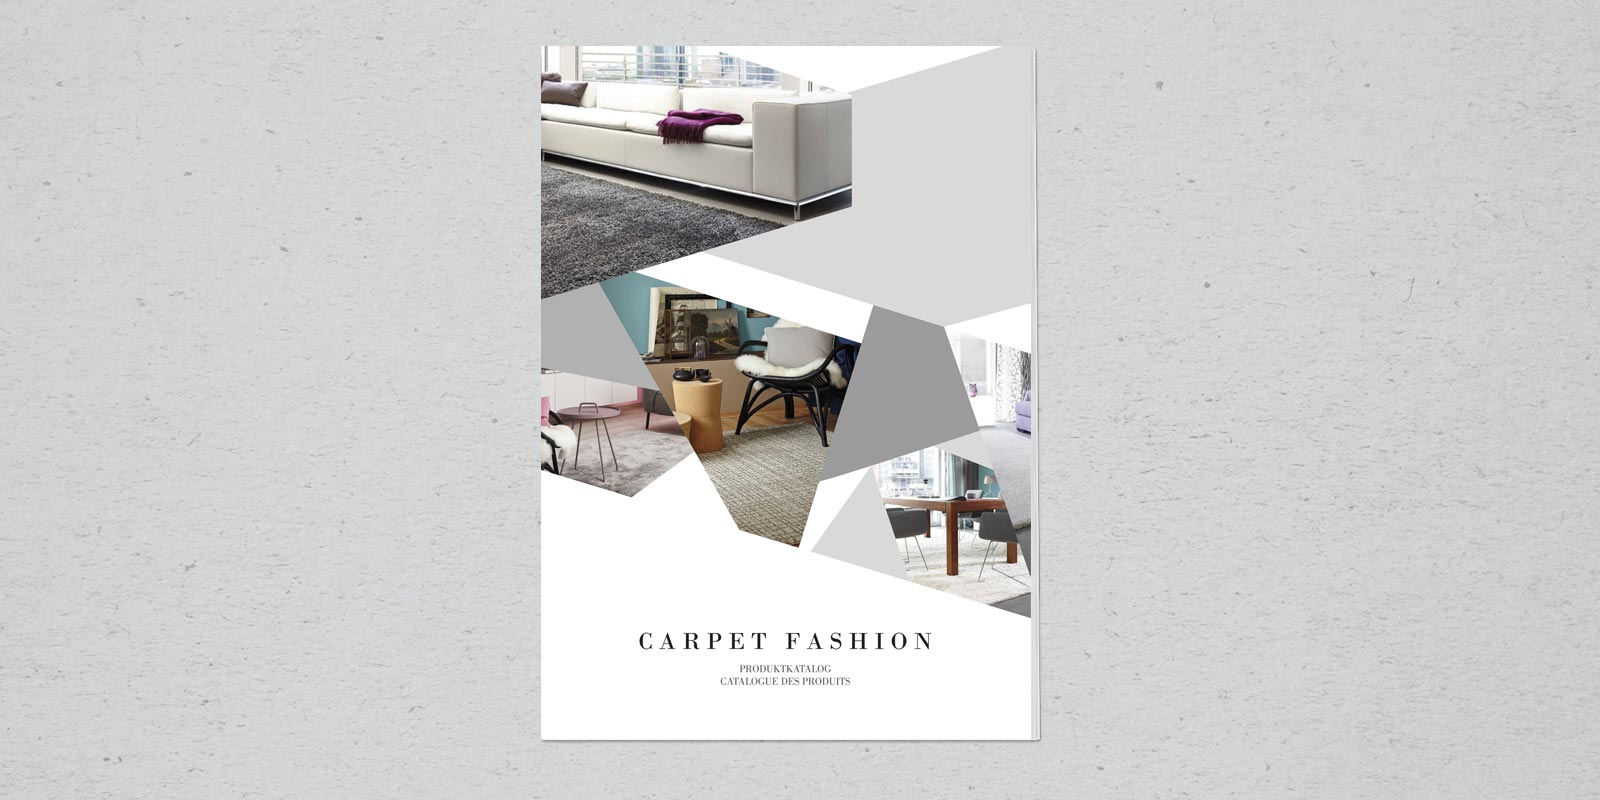 Fashion Carpet Catalogo Prodotti